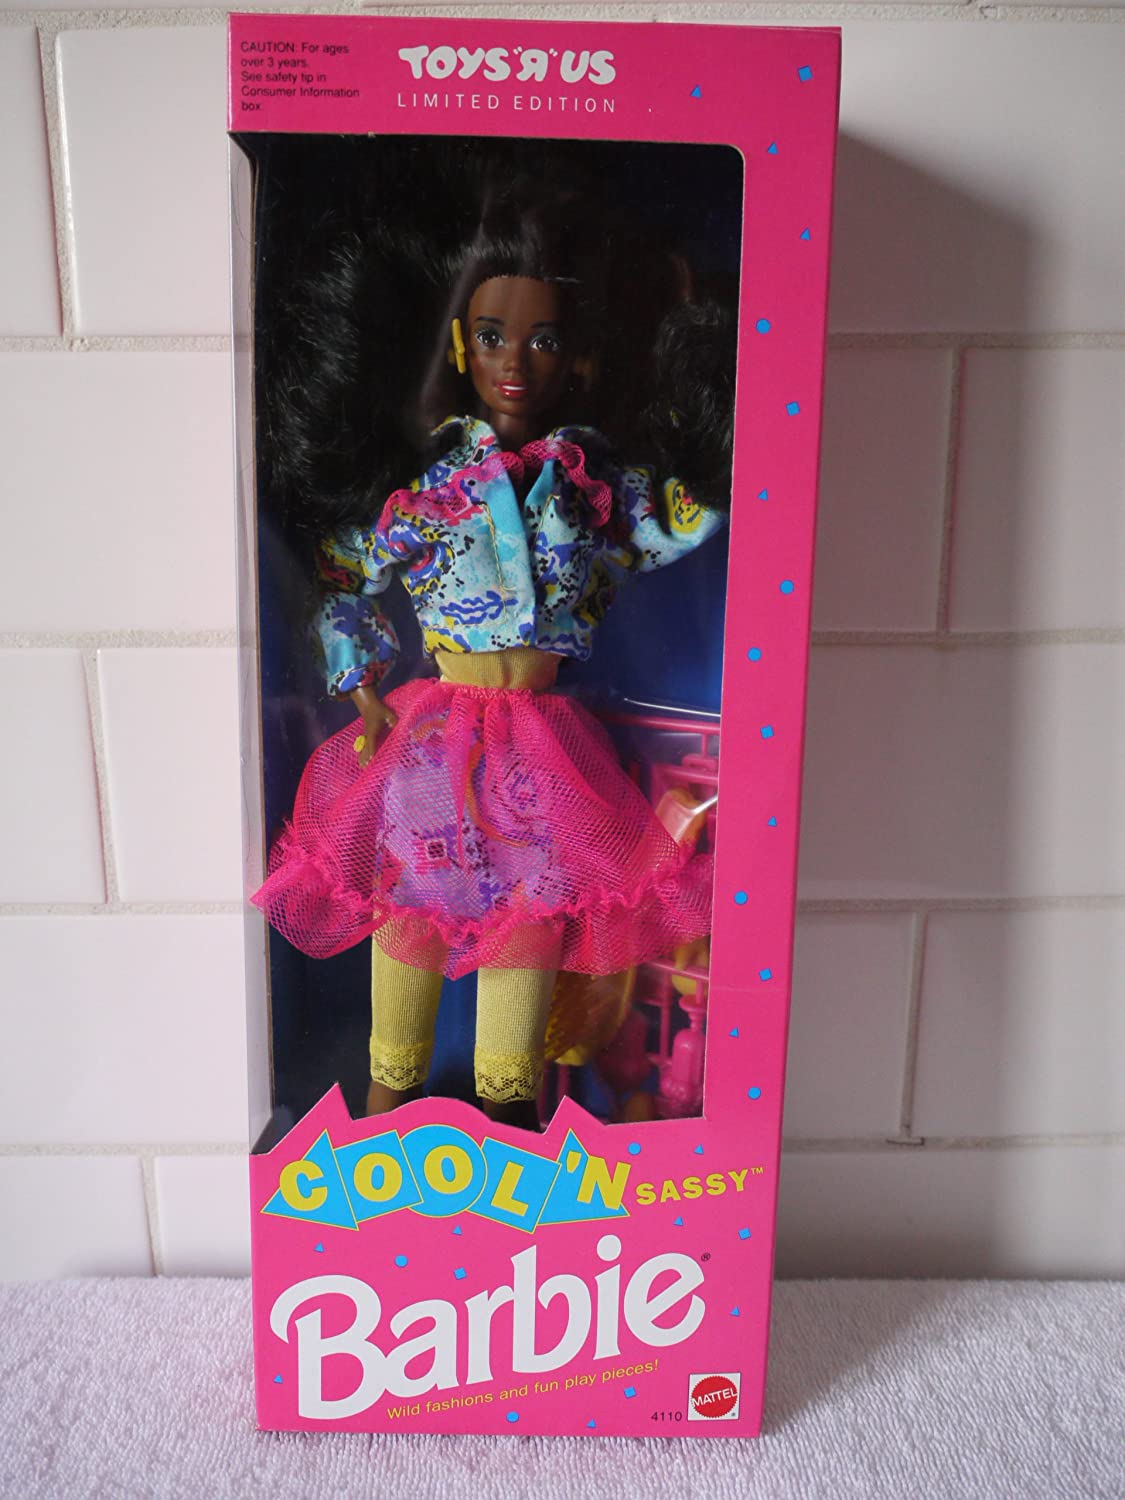 Cool 'N Sassy African American Barbie Toys R Us Limited Edition (1992)